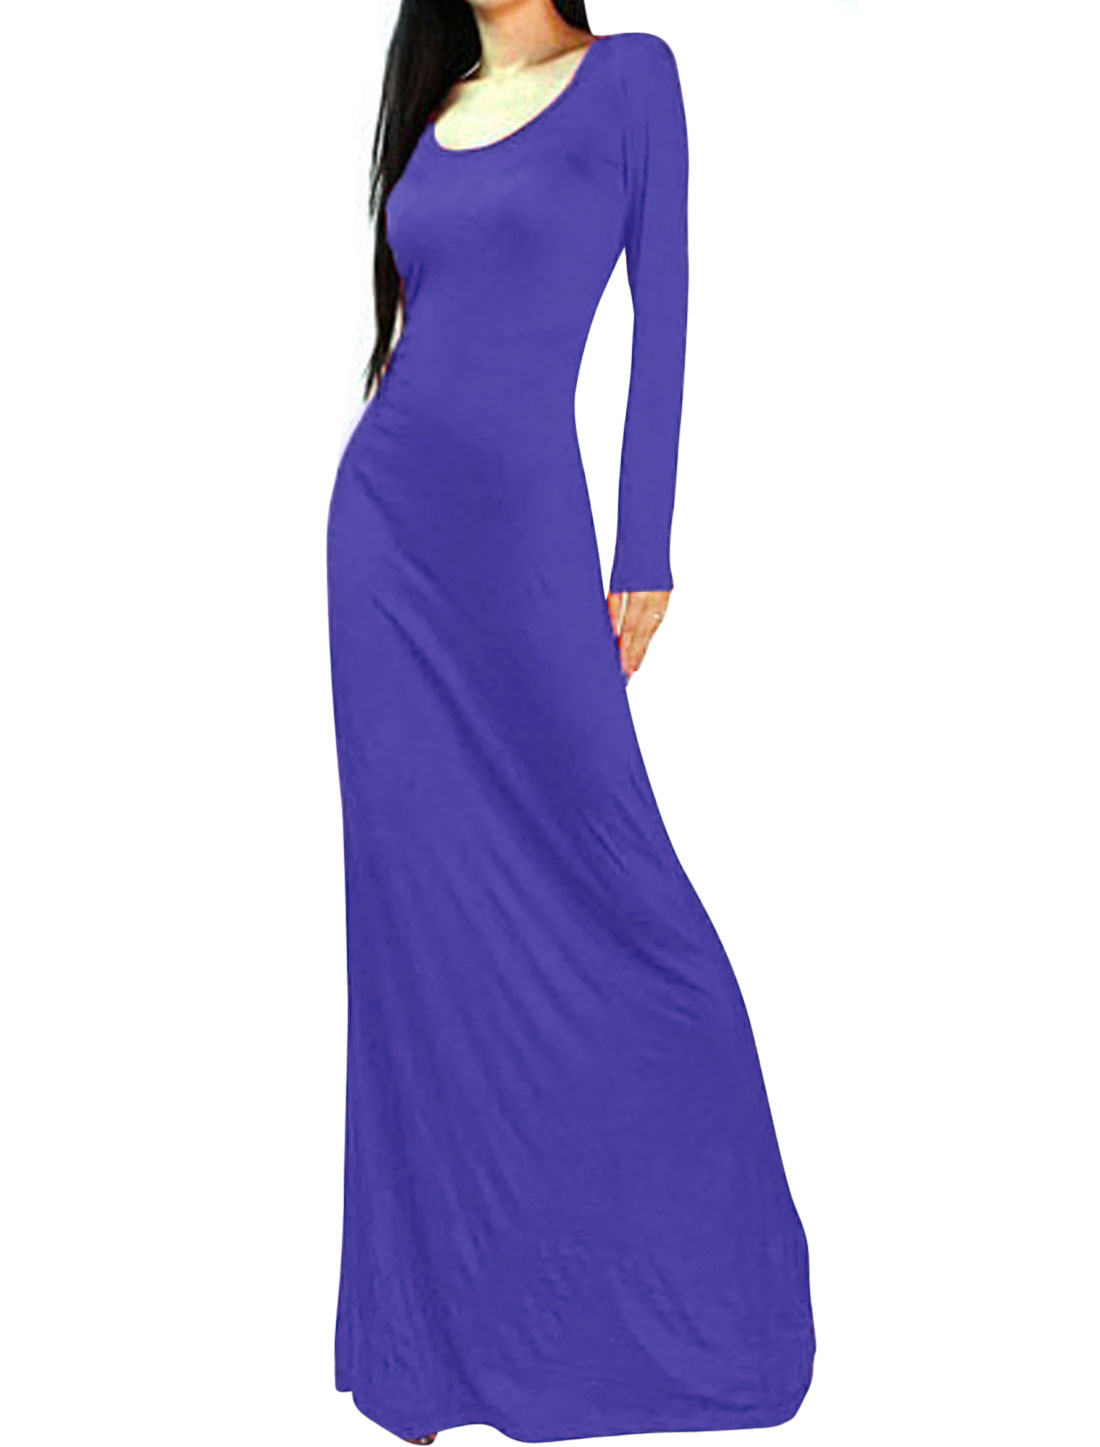 Ladies Full Sleeves Pullover Full Length Design Purple Dress L